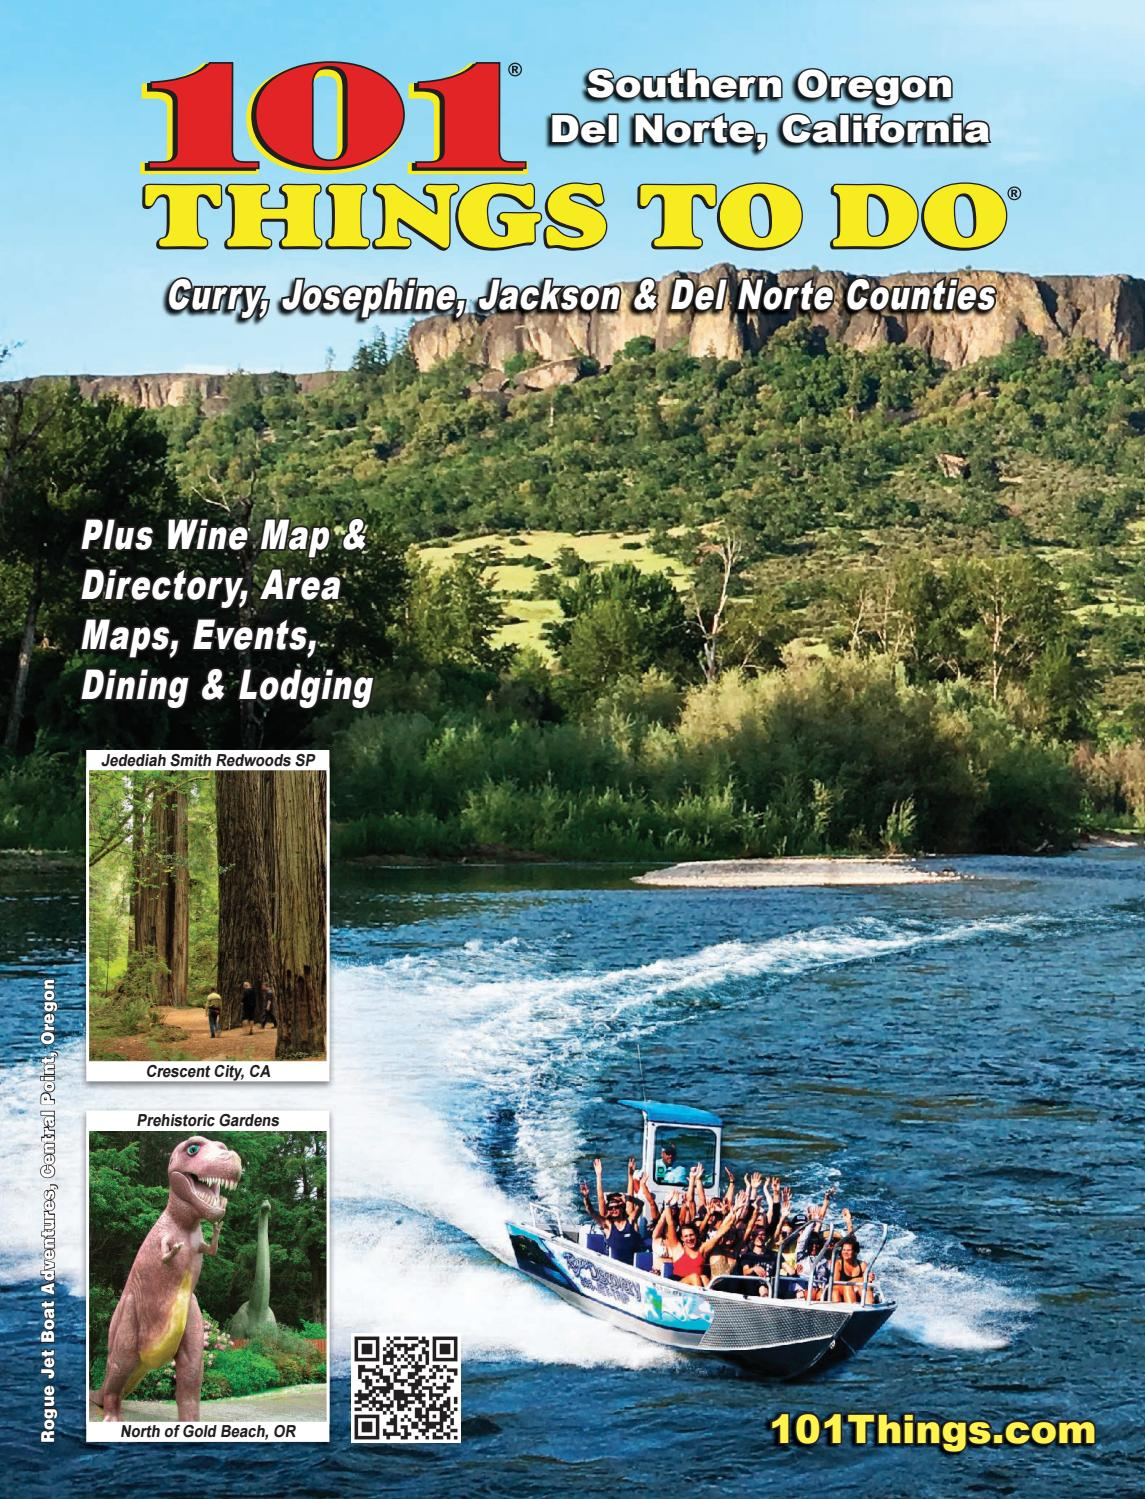 fb3c8a77c 101 Things To Do Southern Oregon Del Norte 2018 by 101 Things To Do  Publications - issuu